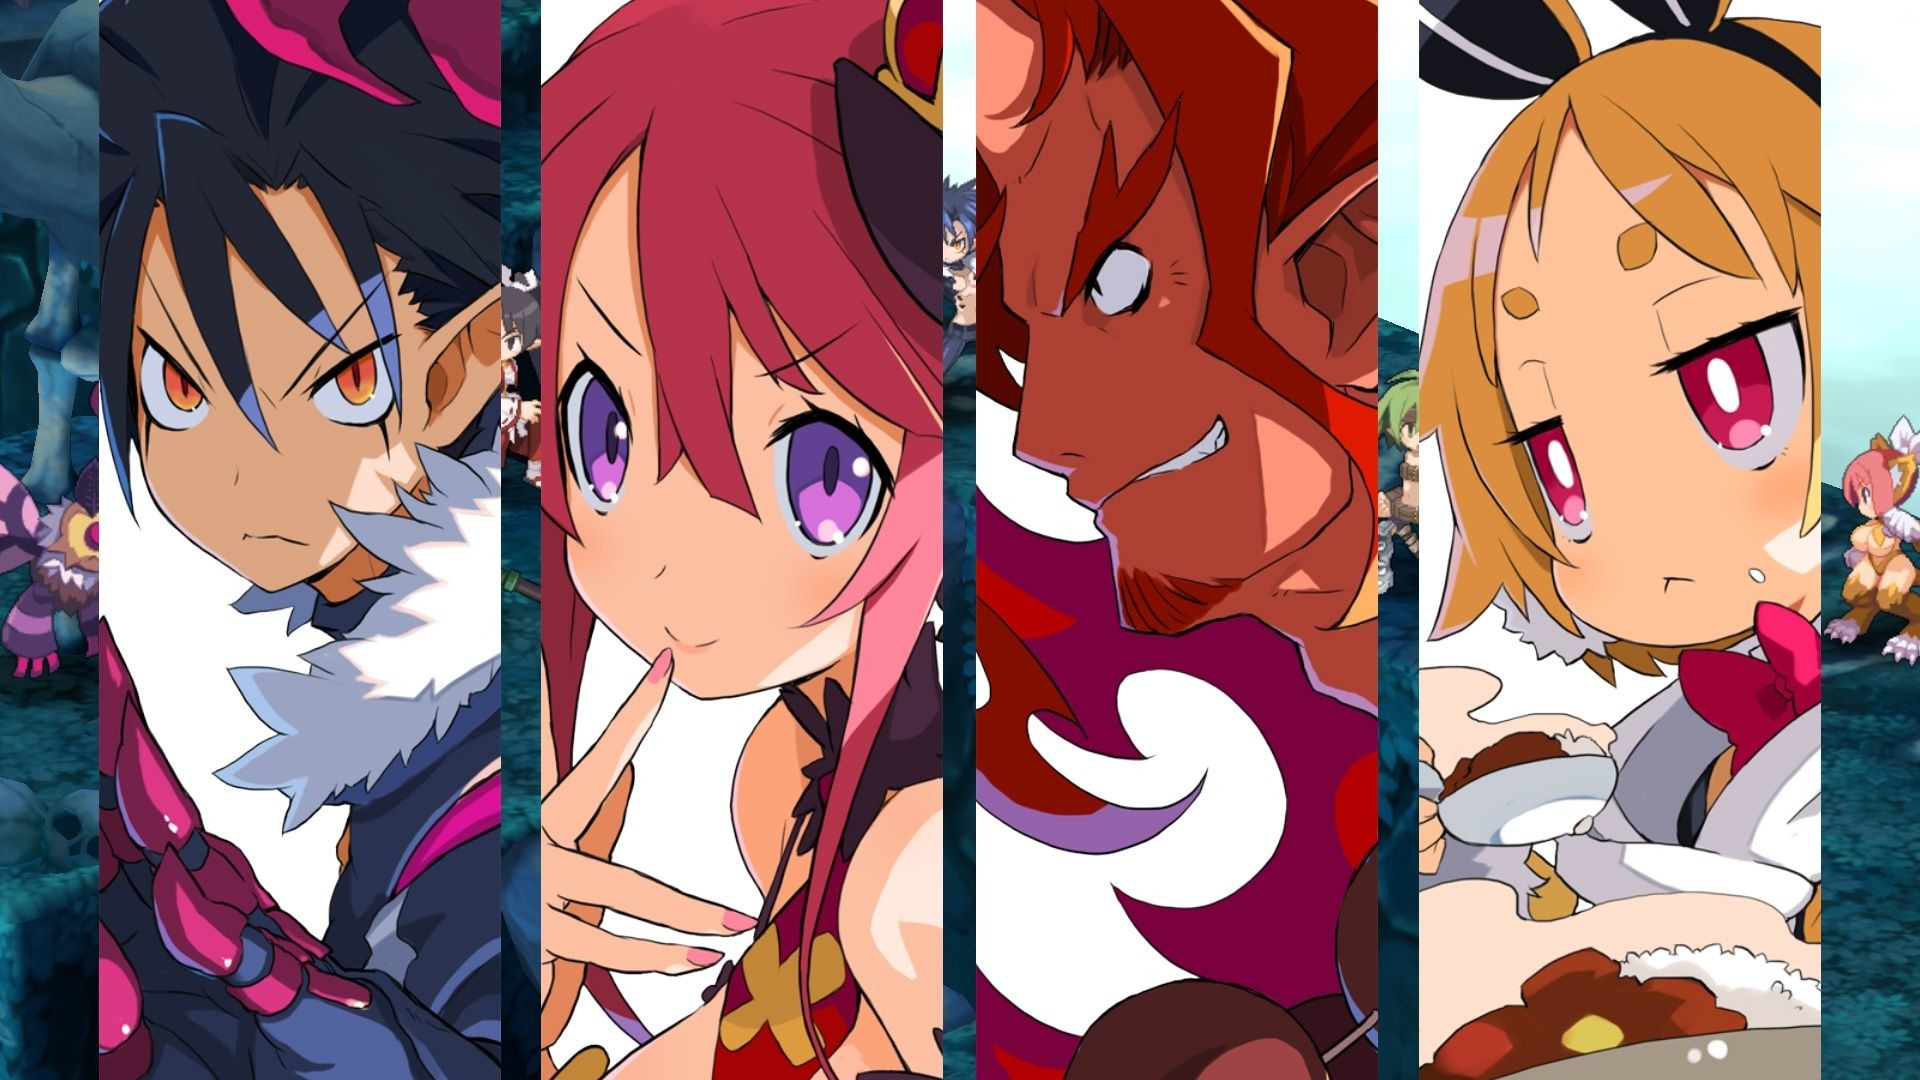 Res: 1920x1080, Disgaea 5: Alliance of Vengeance HD Wallpapers 9 - 1920 X 1080